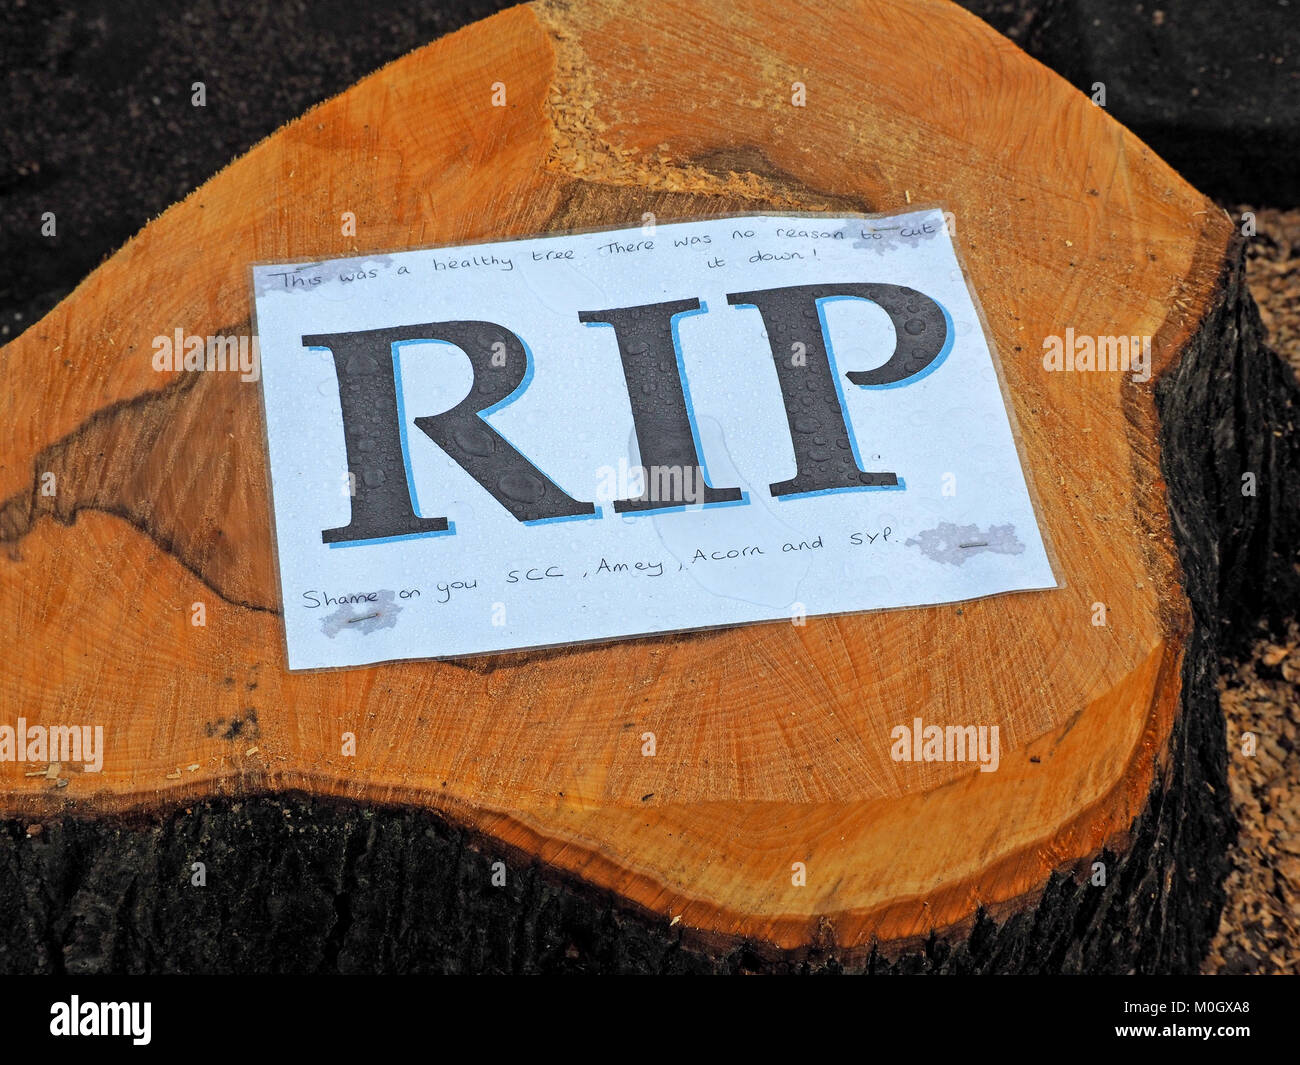 Sheffield, West Yorkshire, England. 22nd Jan, 2018. A sign stapled to the sawn off stump of one of many healthy - Stock Image